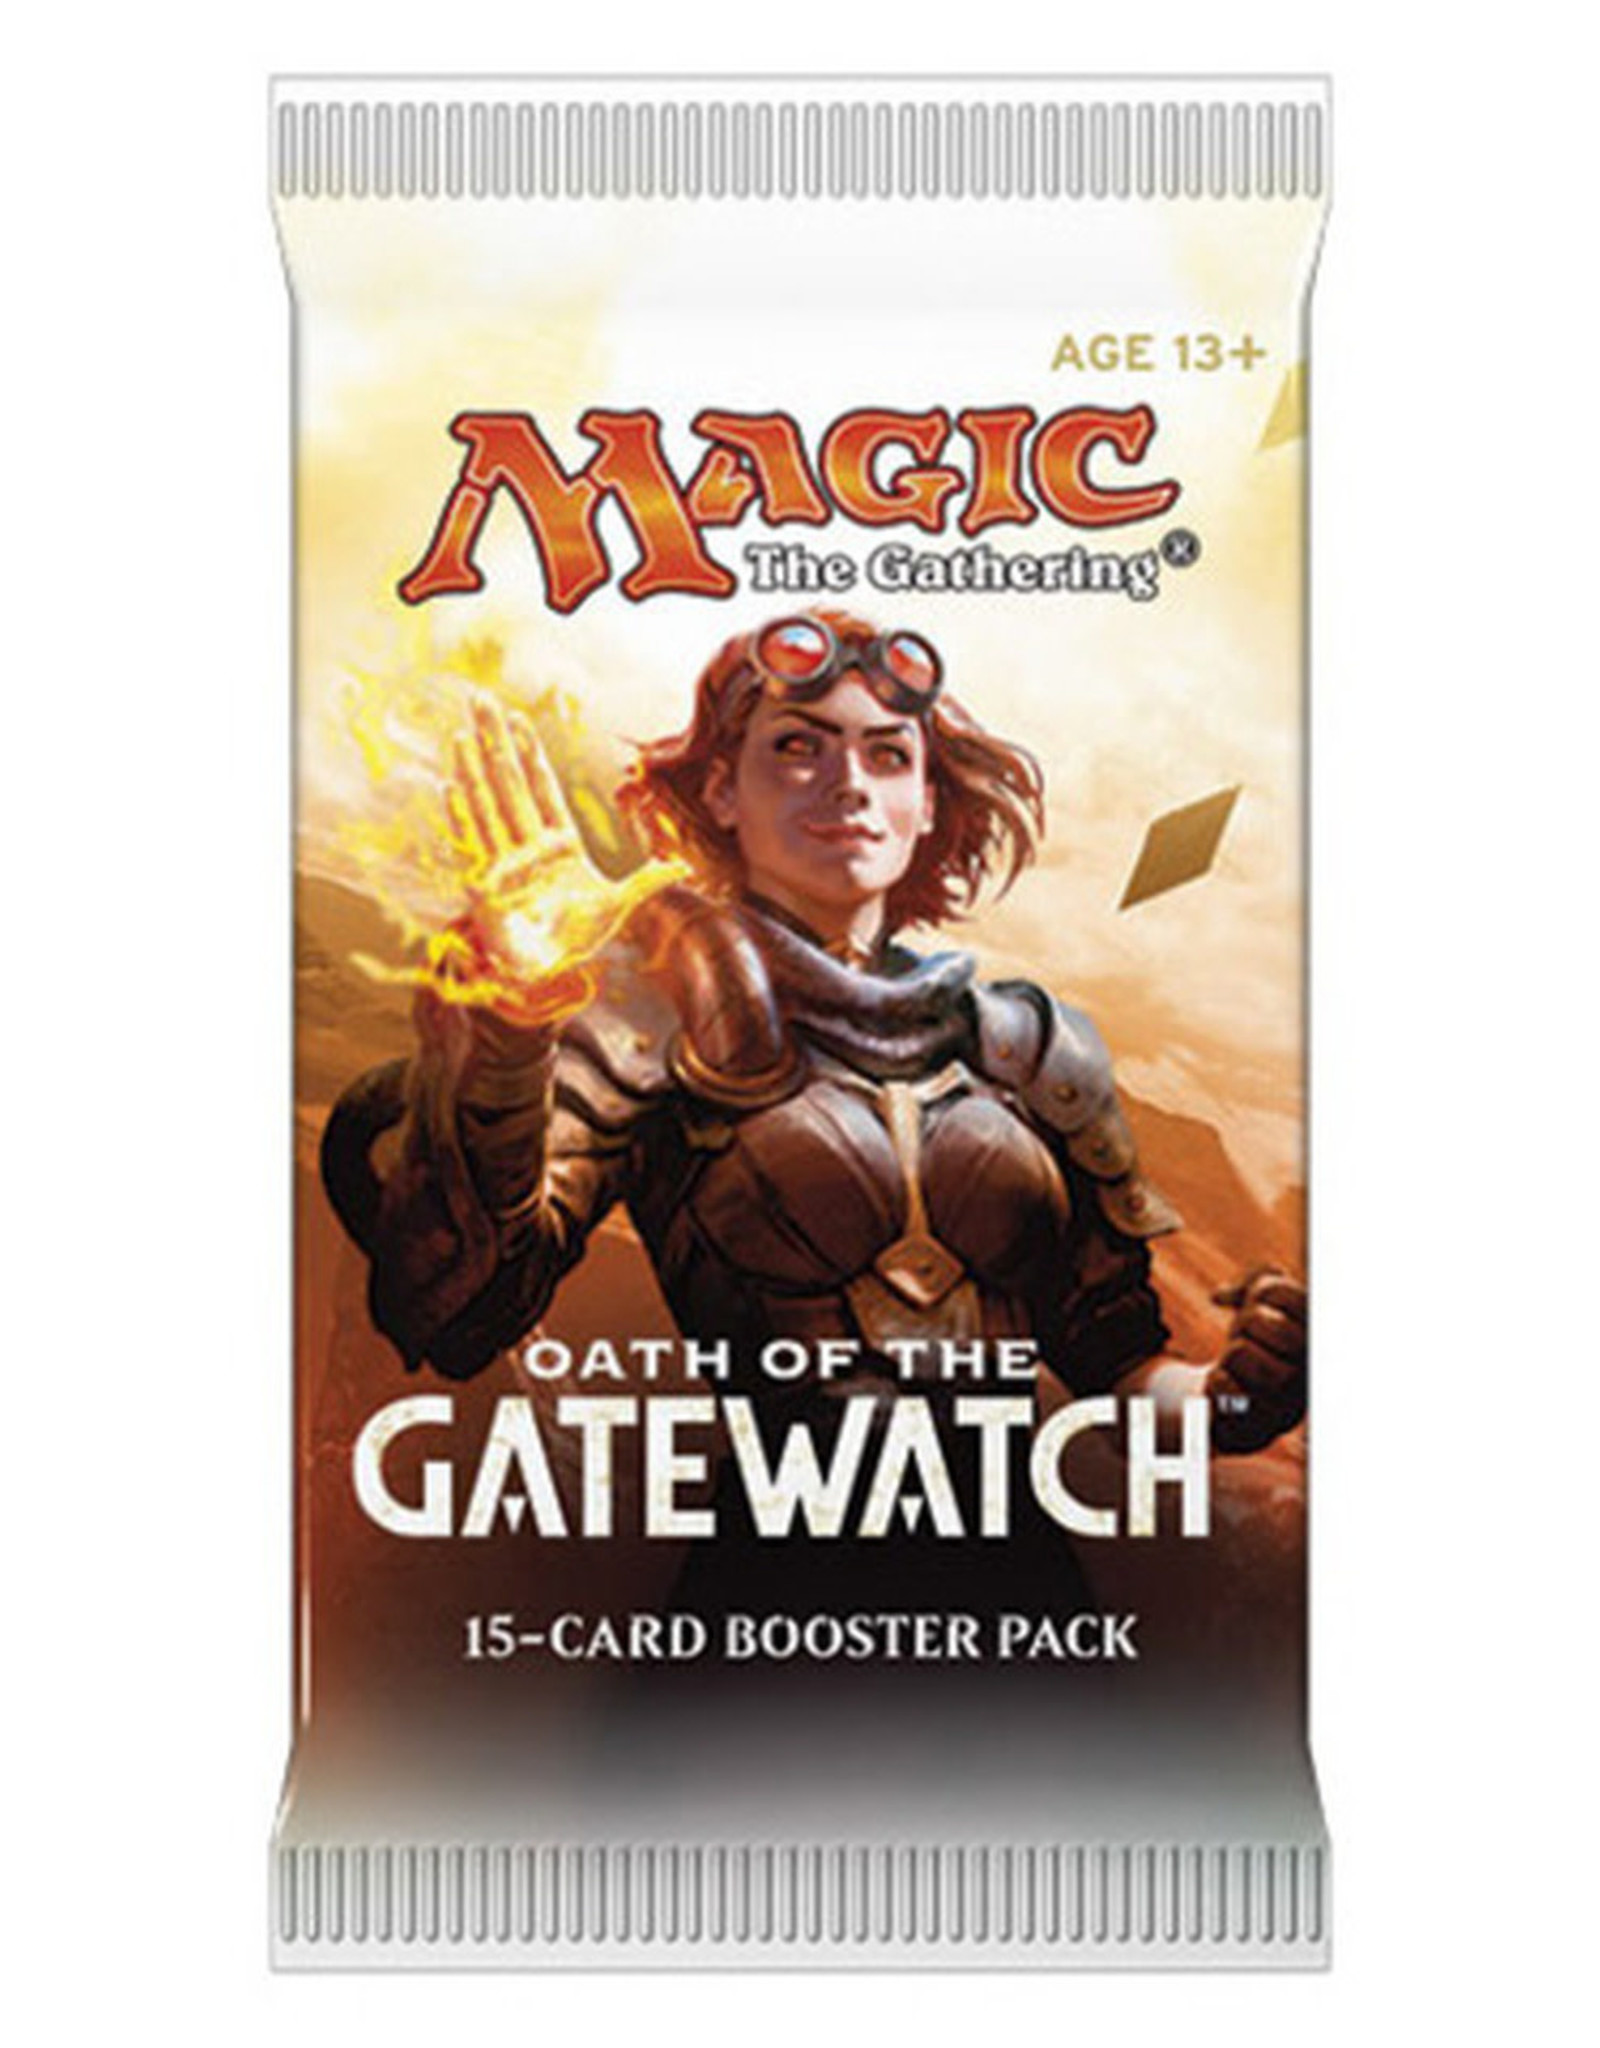 Wizards of the Coast Oath of the Gatewatch Booster Pack